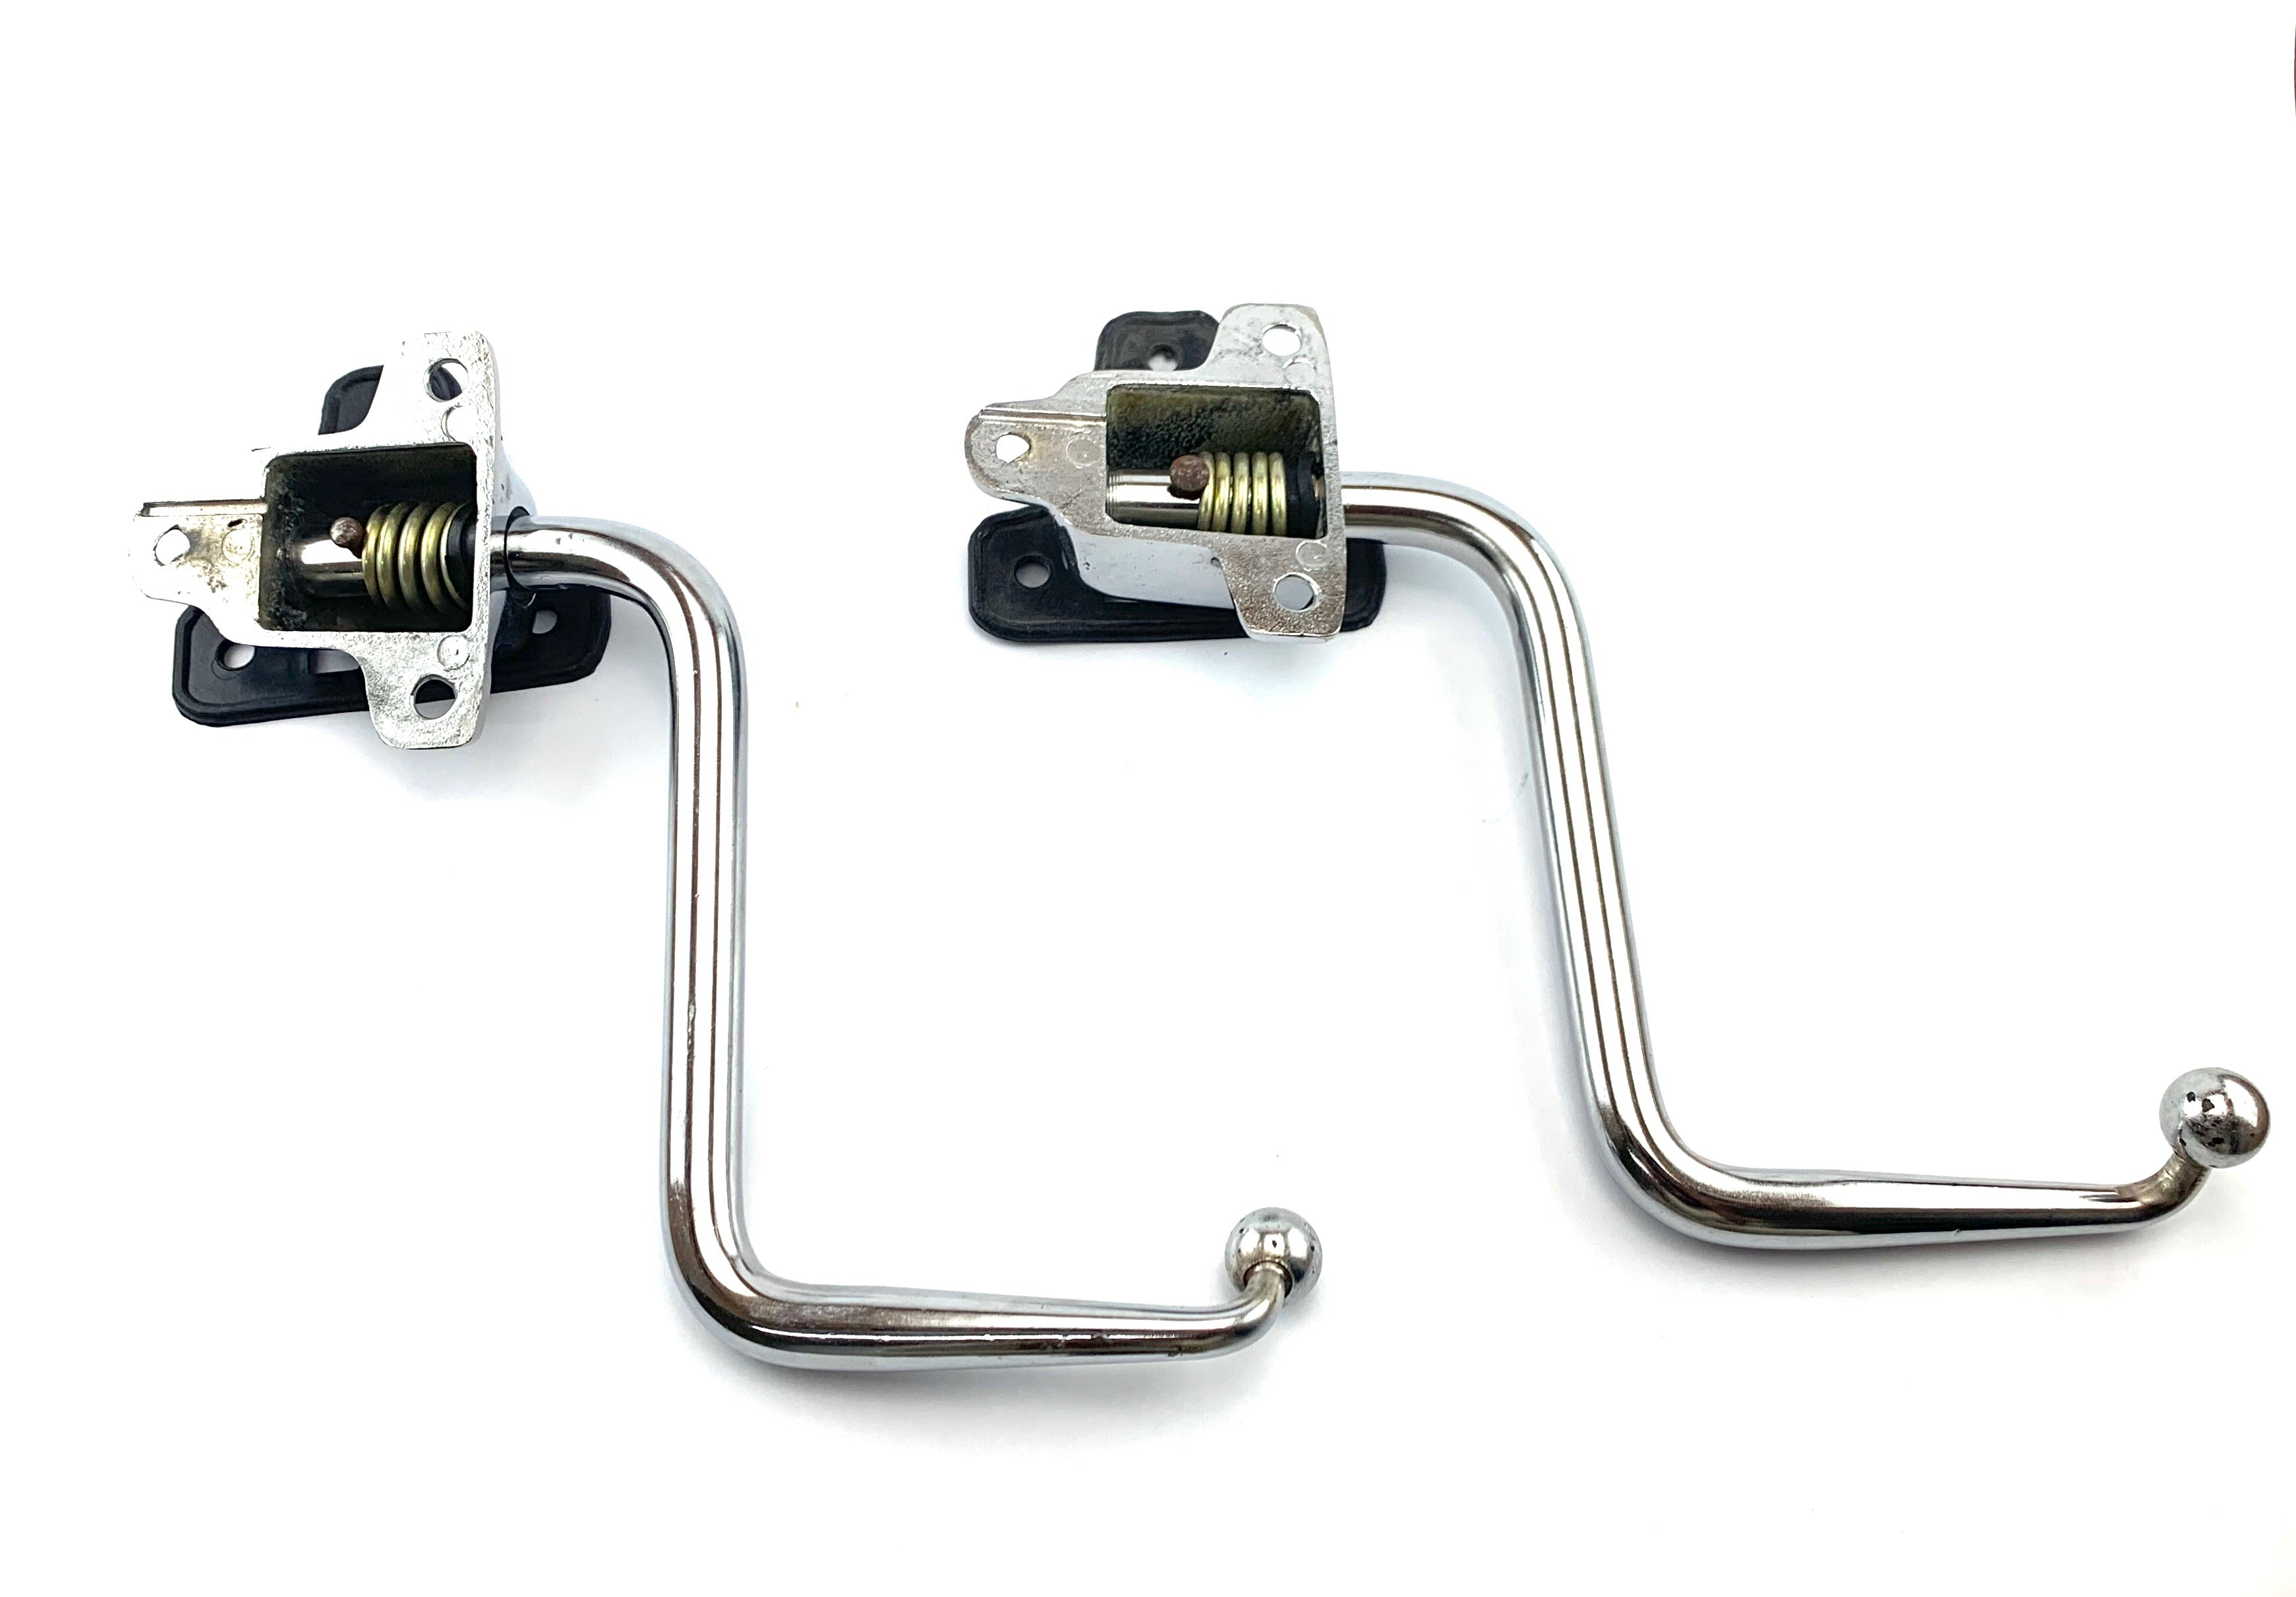 Full metal & chrome plated Mirror arm set